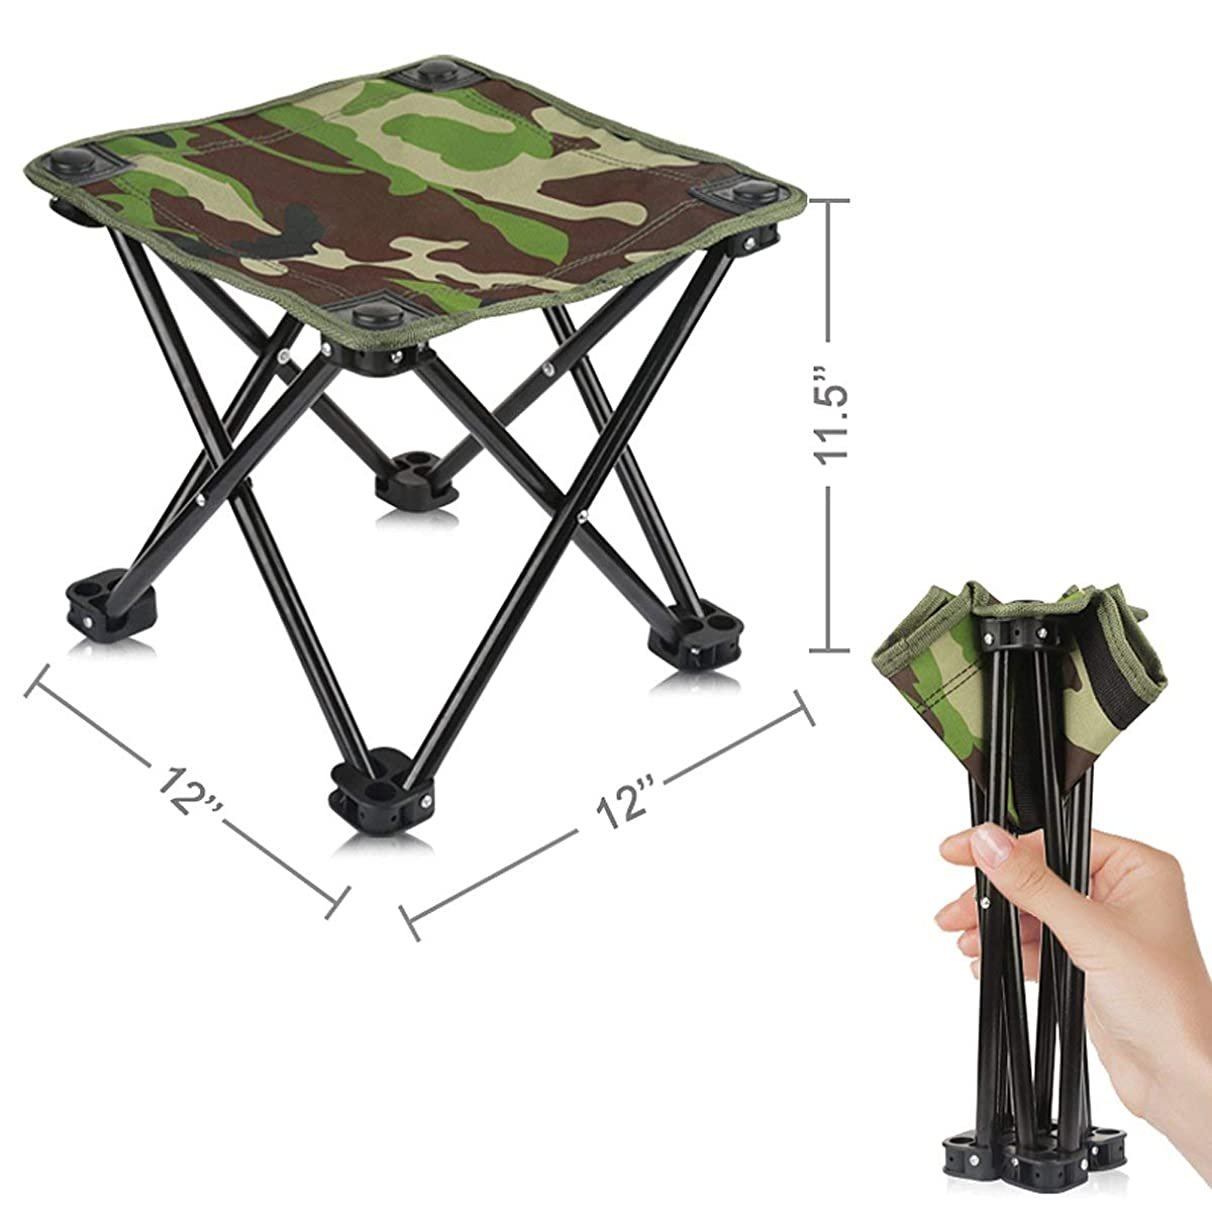 AILLOVCOL Mini Portable Folding Stool,Folding Camping Stool,Outdoor Folding Chair for BBQ,Camping,Fishing,Travel,Hiking,Garden,Beach,Oxford Cloth Seat with Carry Bag,11.5